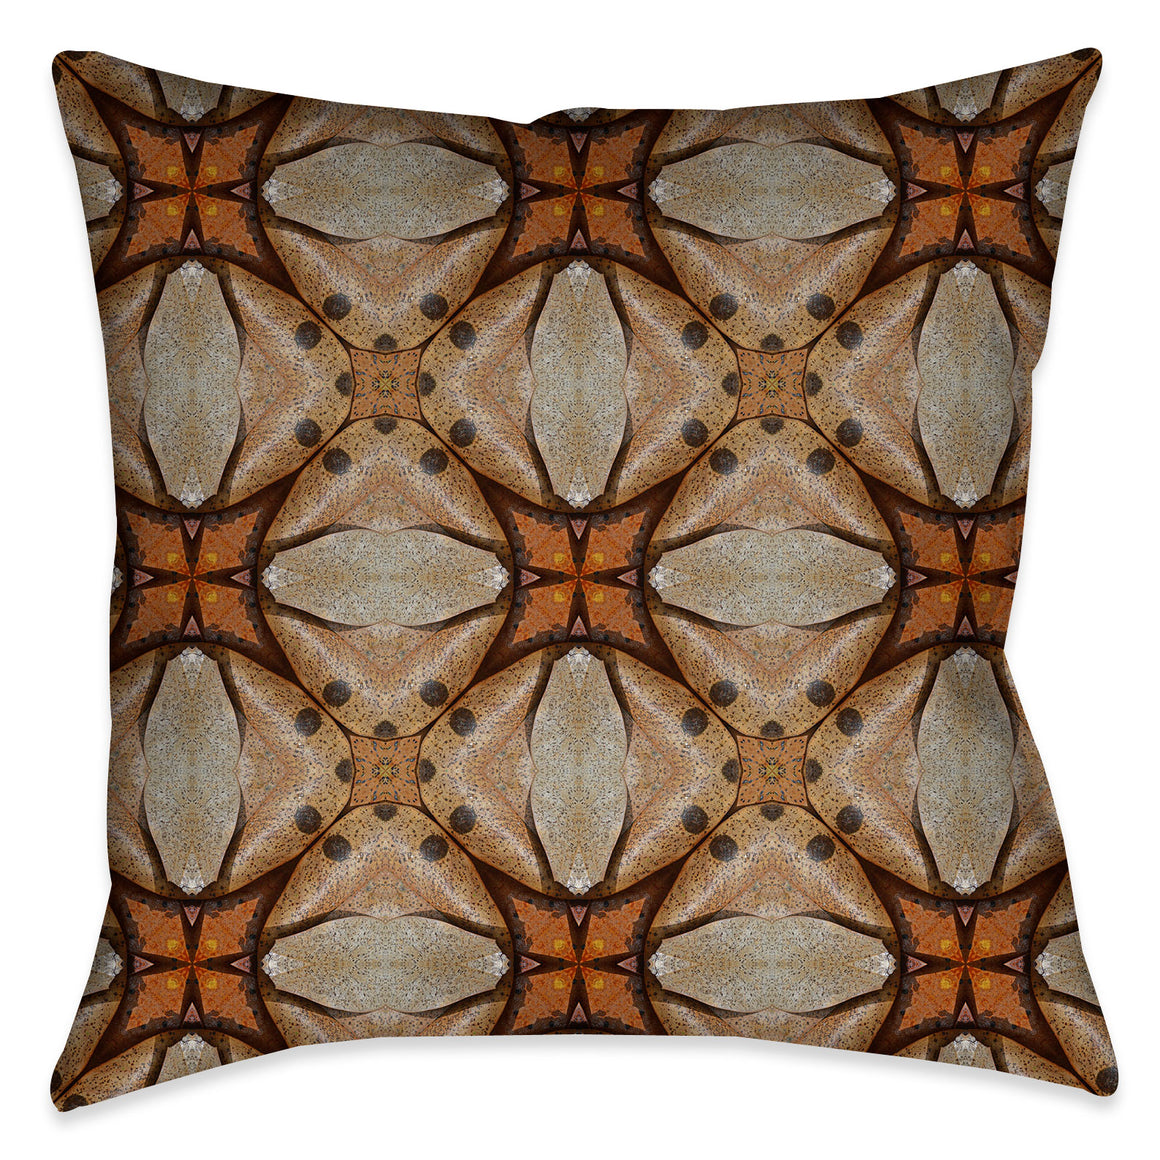 Terra Cotta Magnolia Leaves Indoor Decorative Pillow